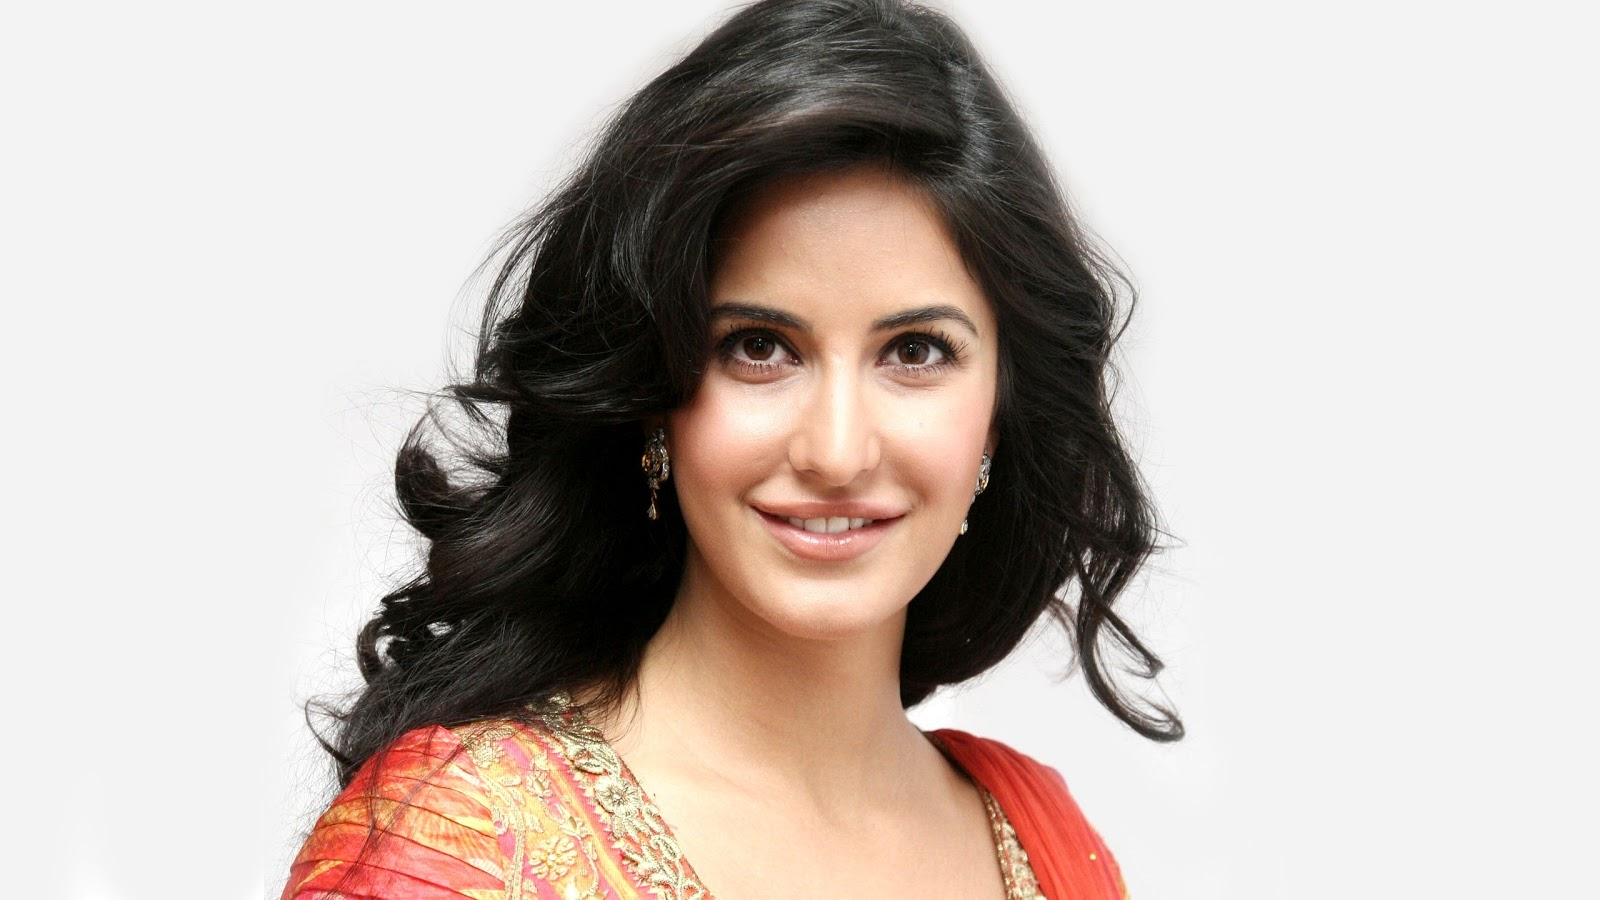 katrina kaif open photo